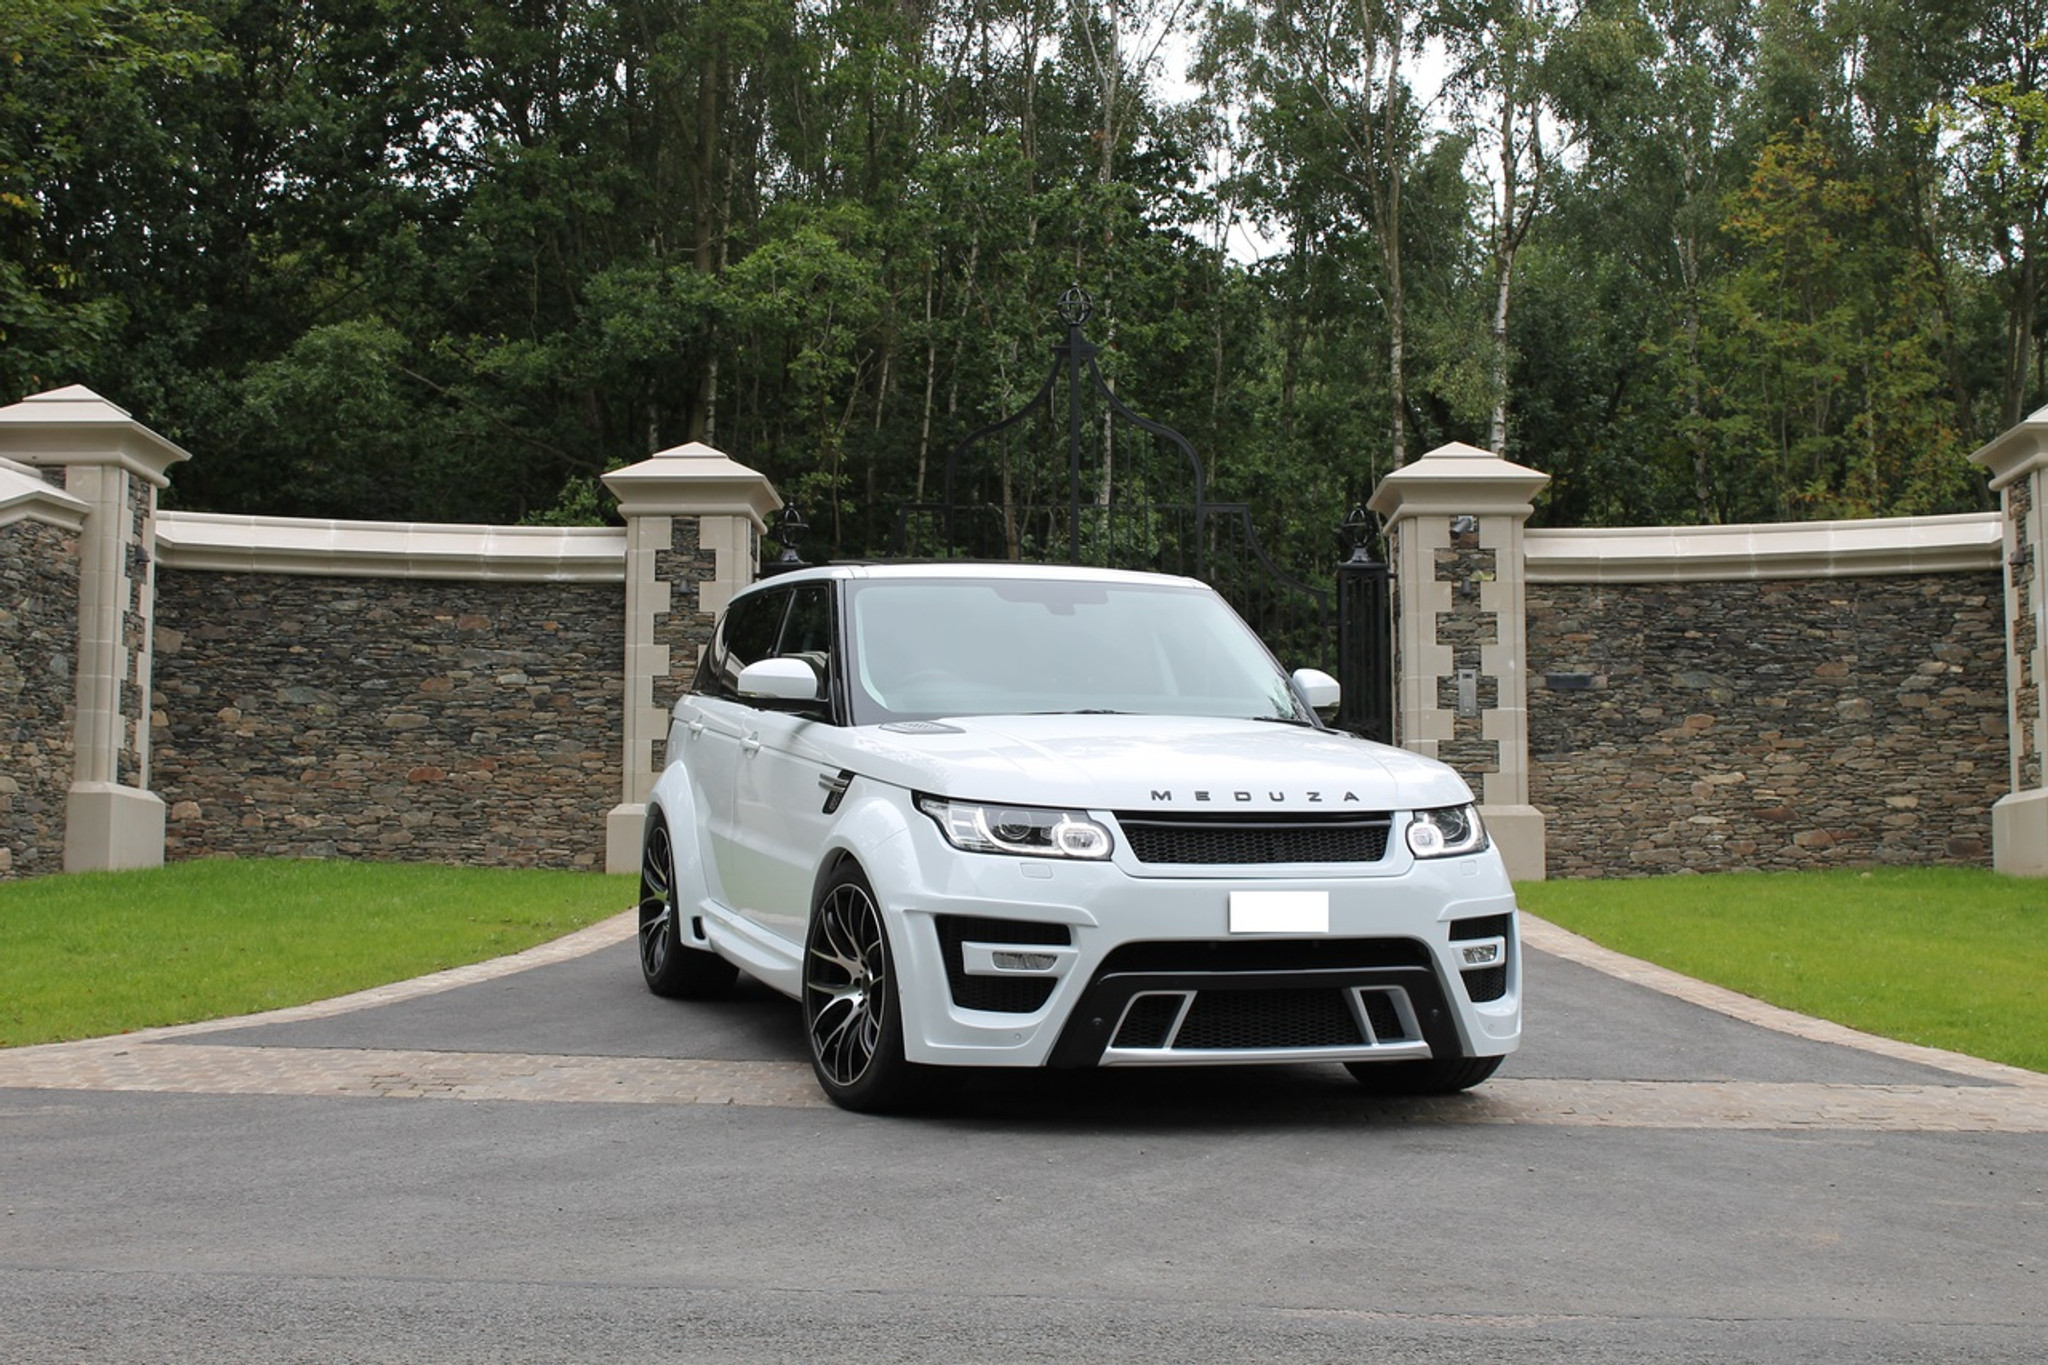 Range Rover Sport 2015 Meduza Rs 700 Body Kit Meduza